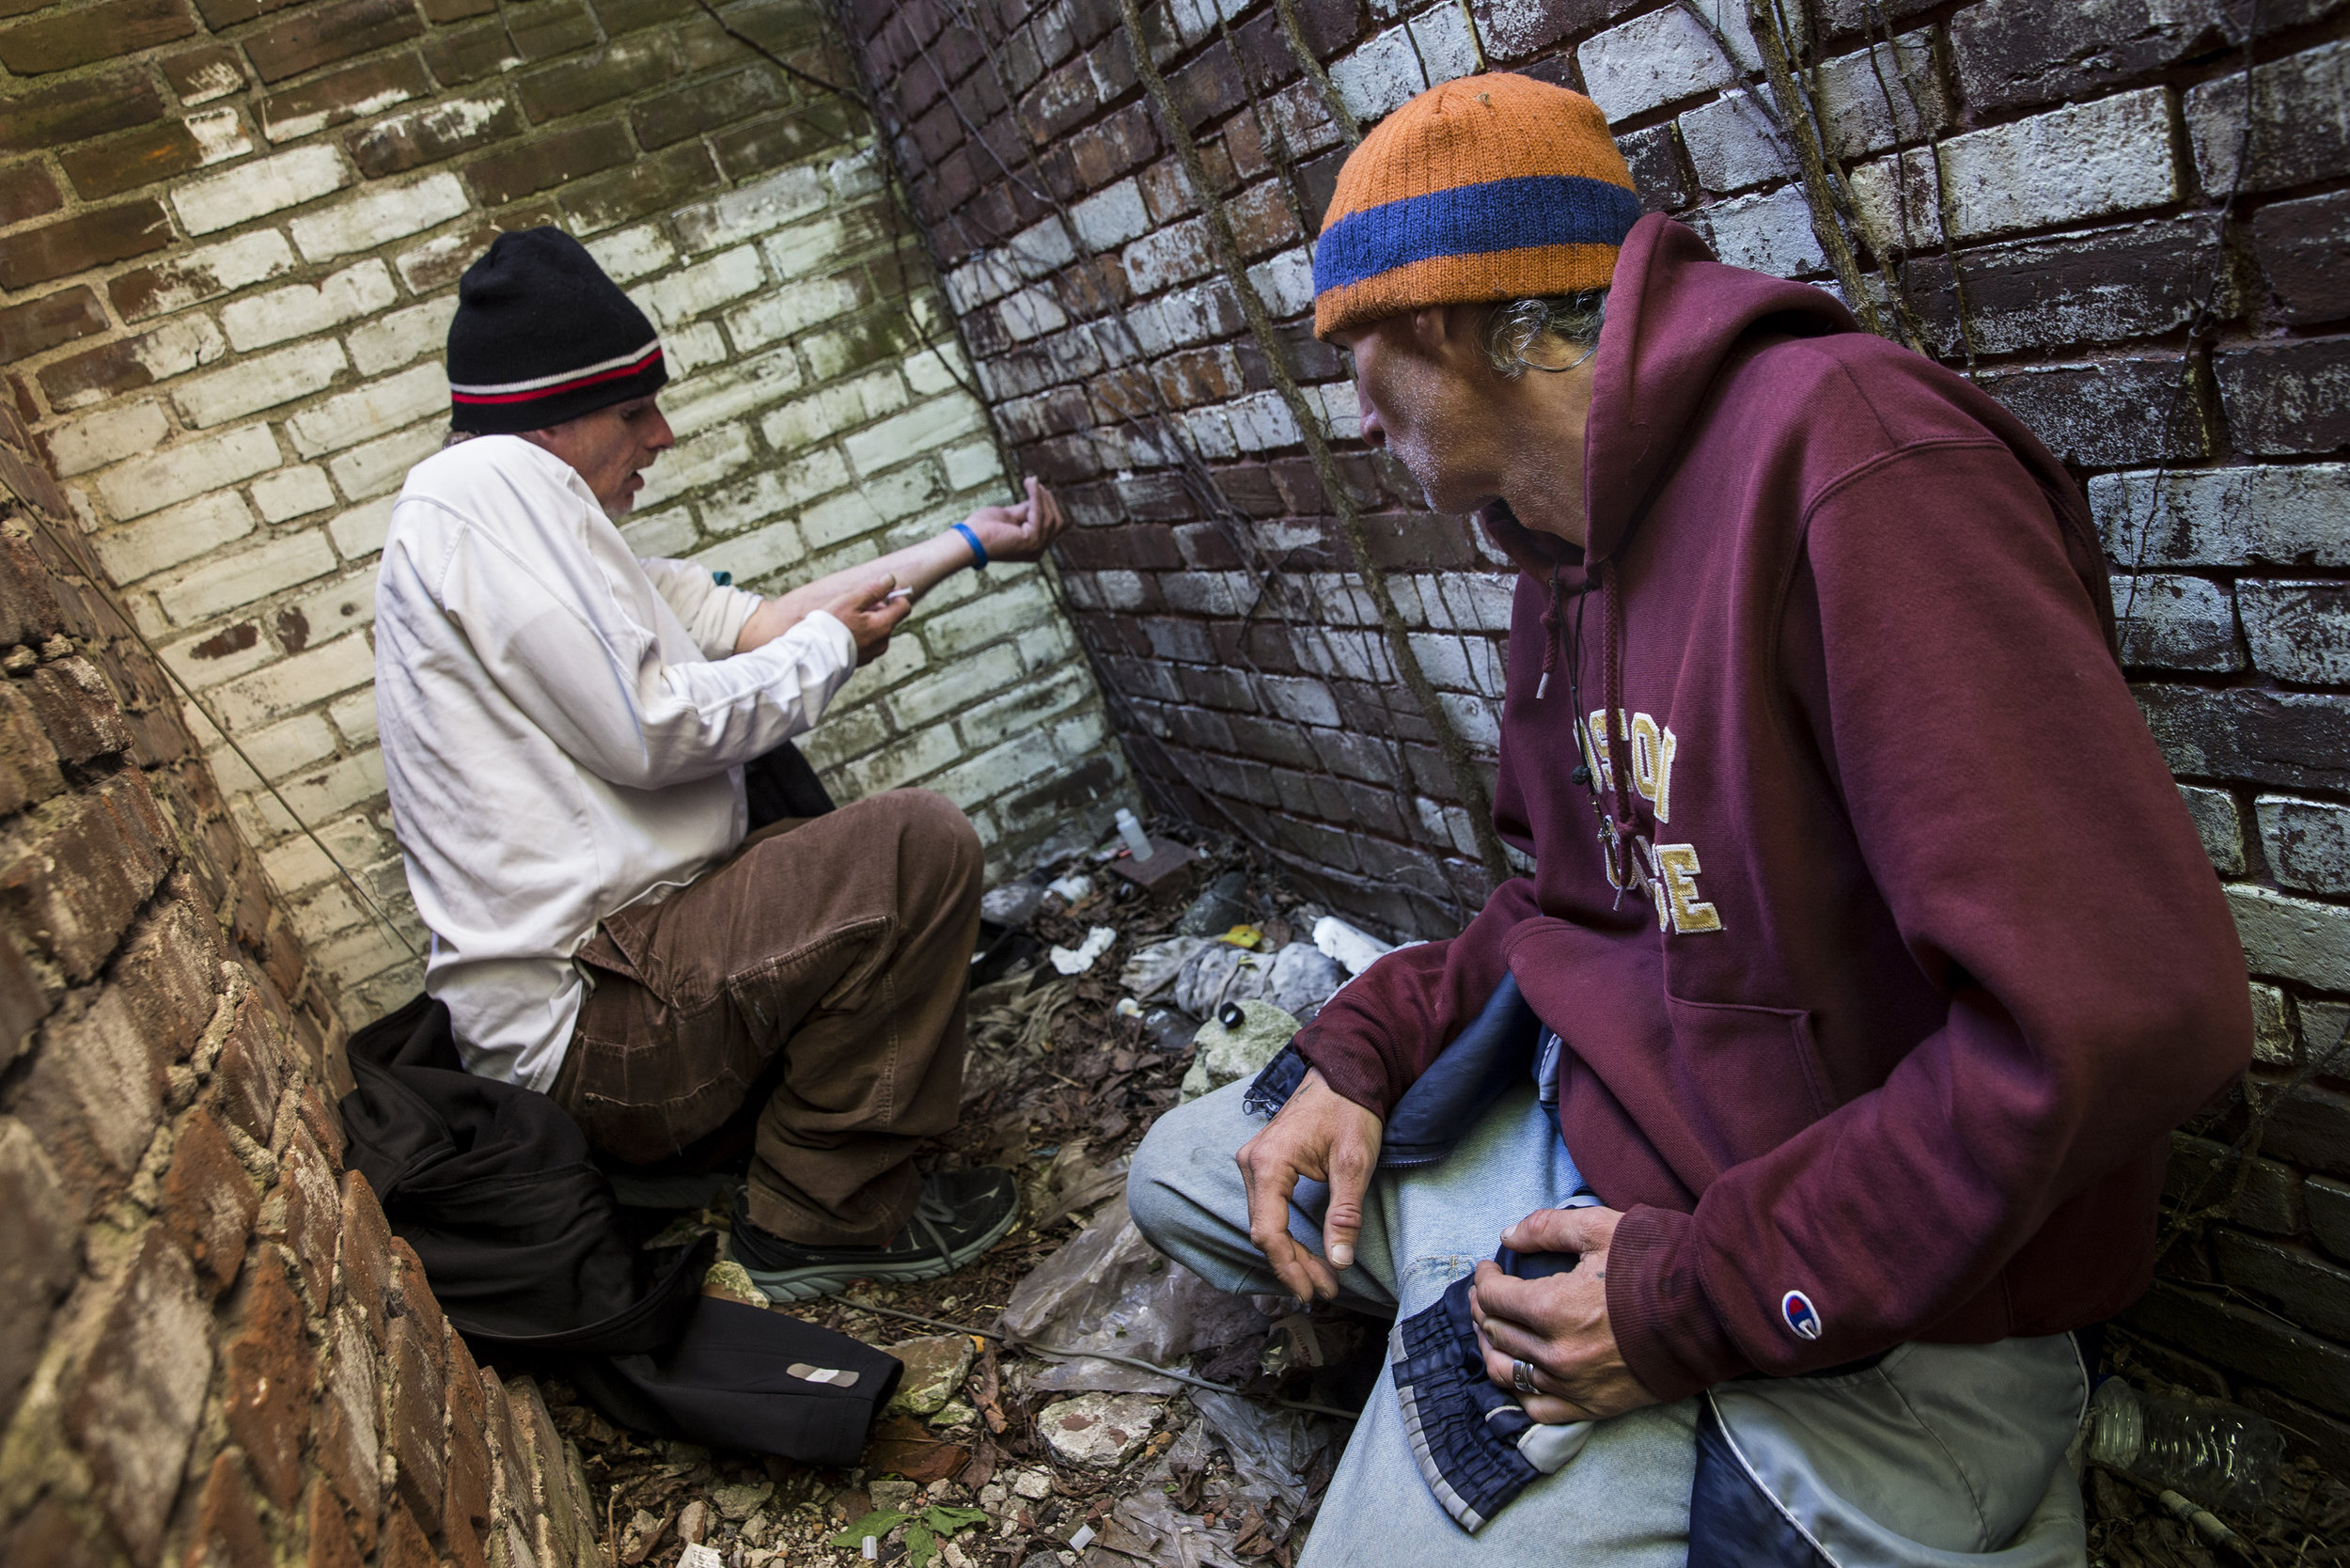 "Shaun ""BoneZ"" LeBlanc(R) watches as his friend Chris shoots heroin behind a house. After a night in the shelter both were feeling the symptoms of withdrawal from heroin usage. Before entering the shelter  users have to discard or hide their drugs or risk being barred if they are caught with them. After spending the night with out a fix Shawn and Chris were desperate to get high. LeBlanc and his wife Donna Perry have been homeless heroin users for the last several years and are working to find housing and kick their habits."